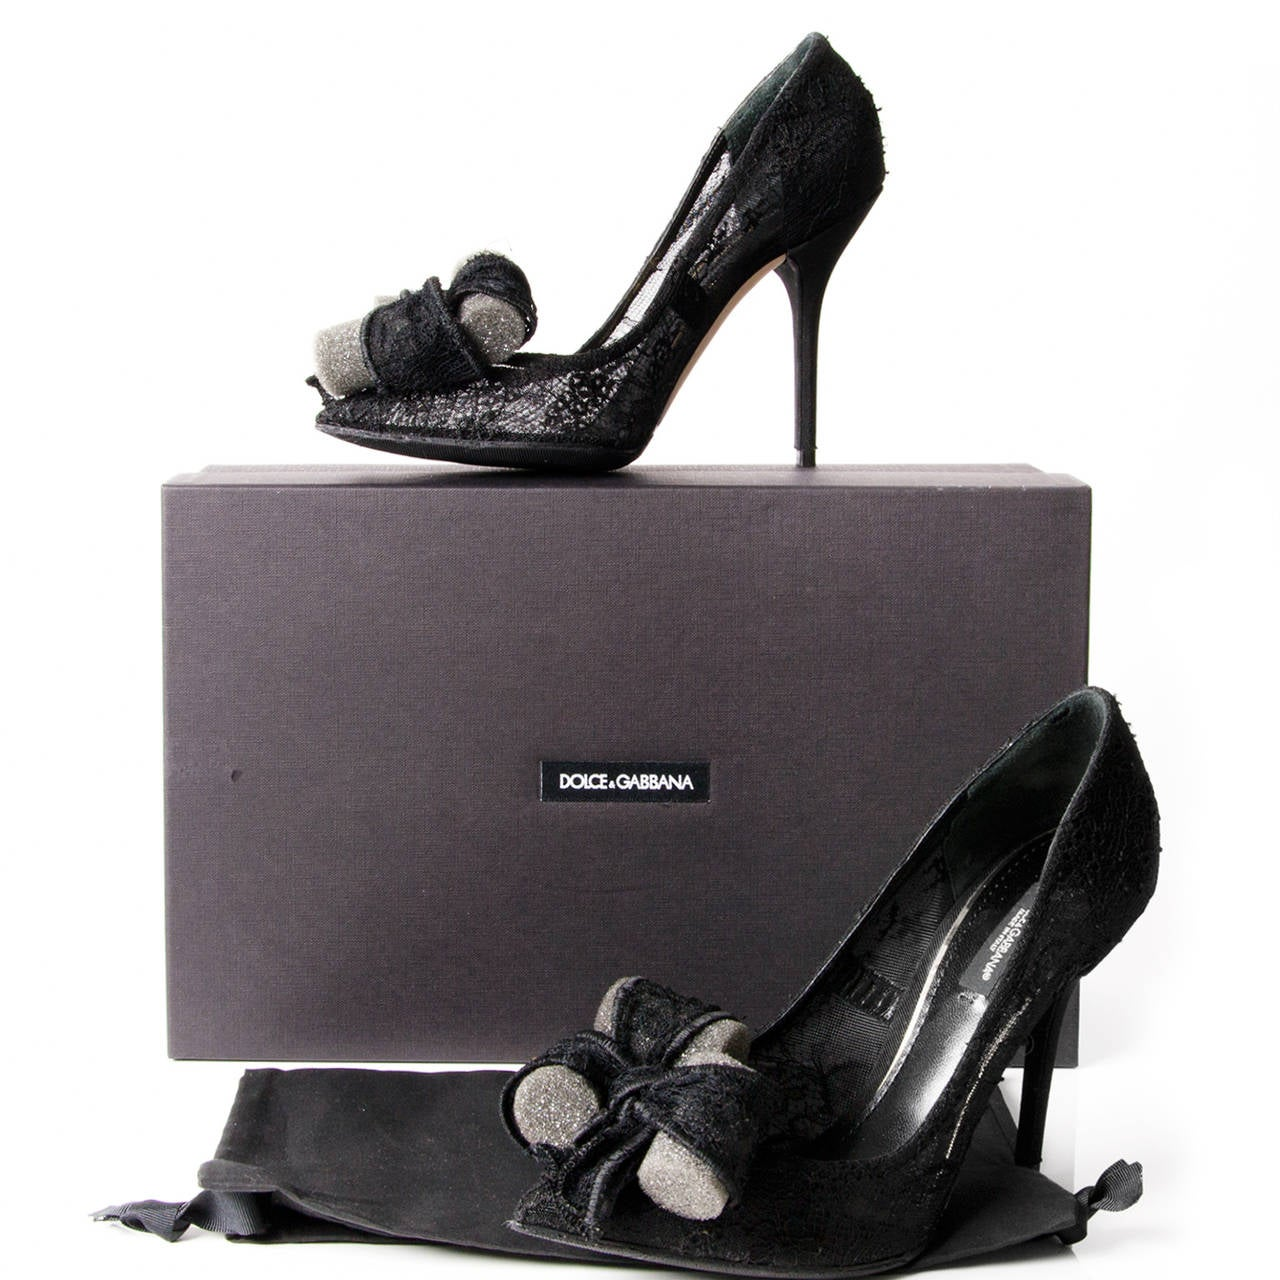 Dolce & Gabbana cotton lace covered high heel. Chantilly lace bow with internal iron wiring. Leather innersole. Stiletto heel.